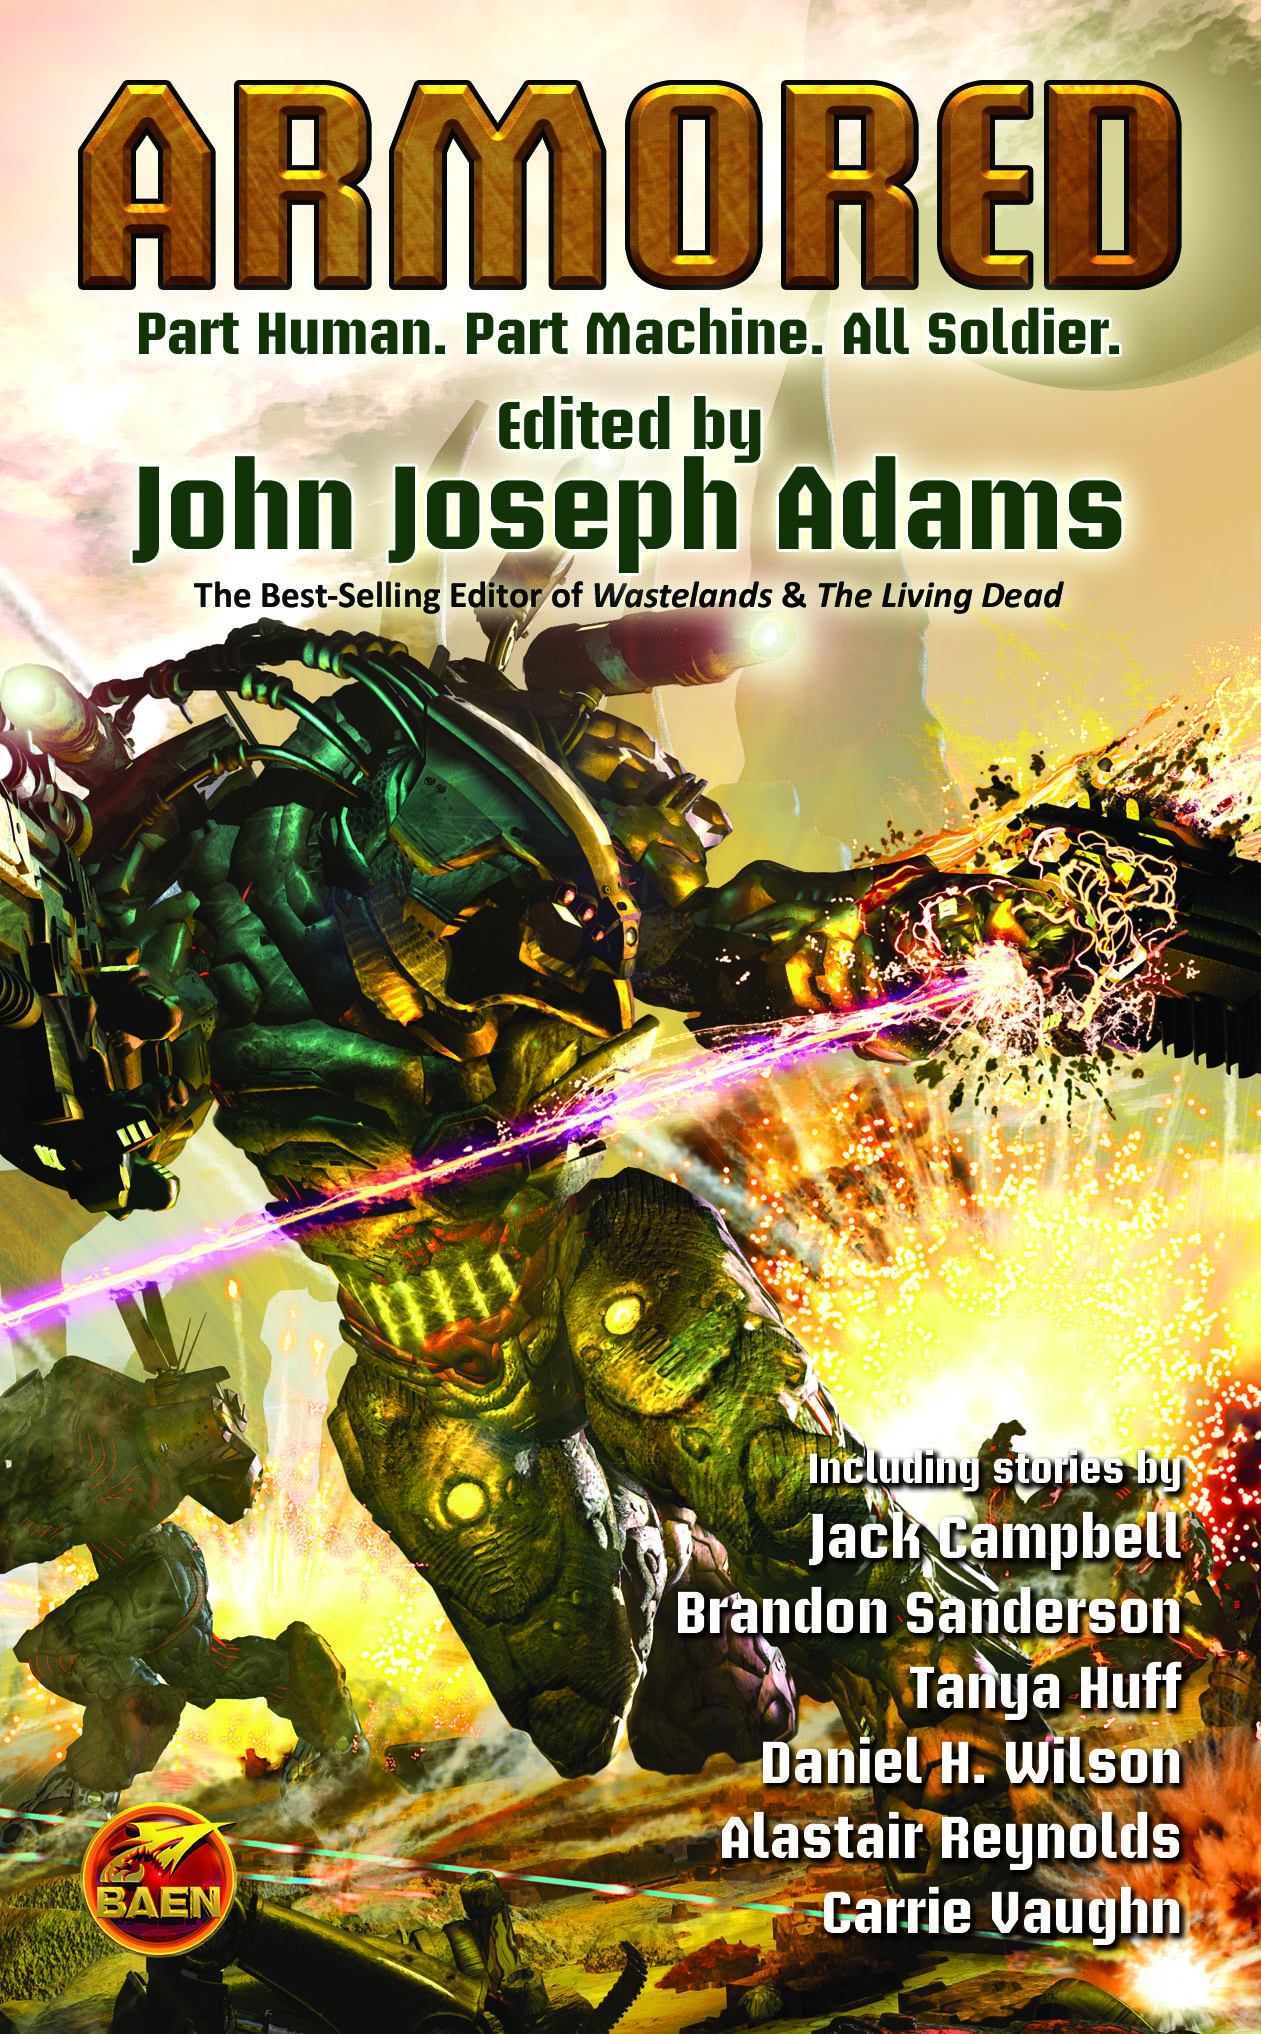 Armored, edited by John Joseph Adams